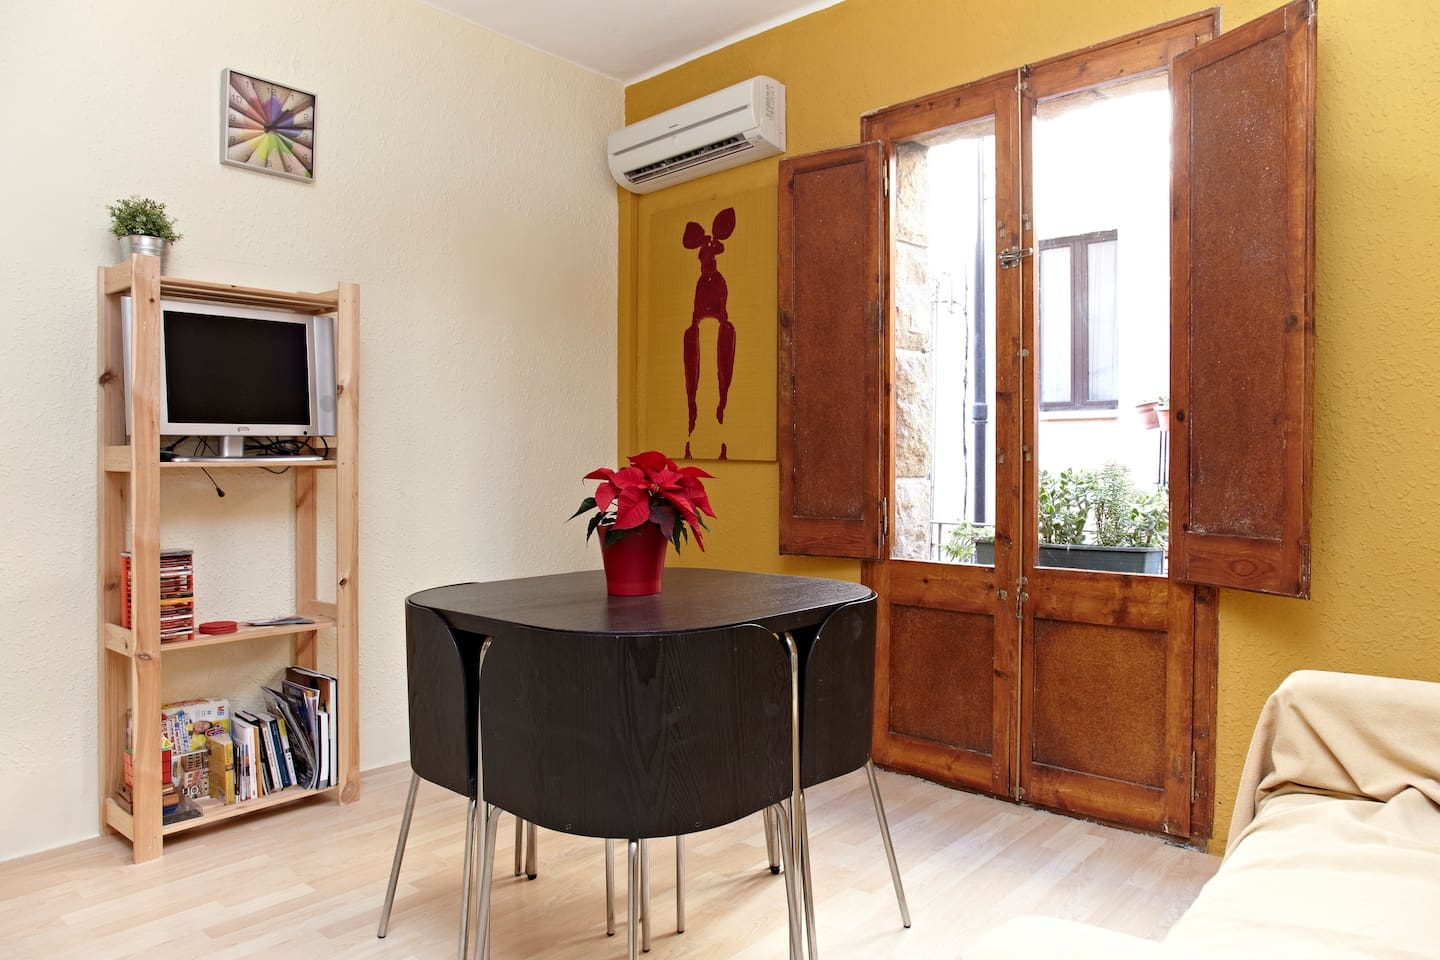 Dinning Room with Air Conditioner